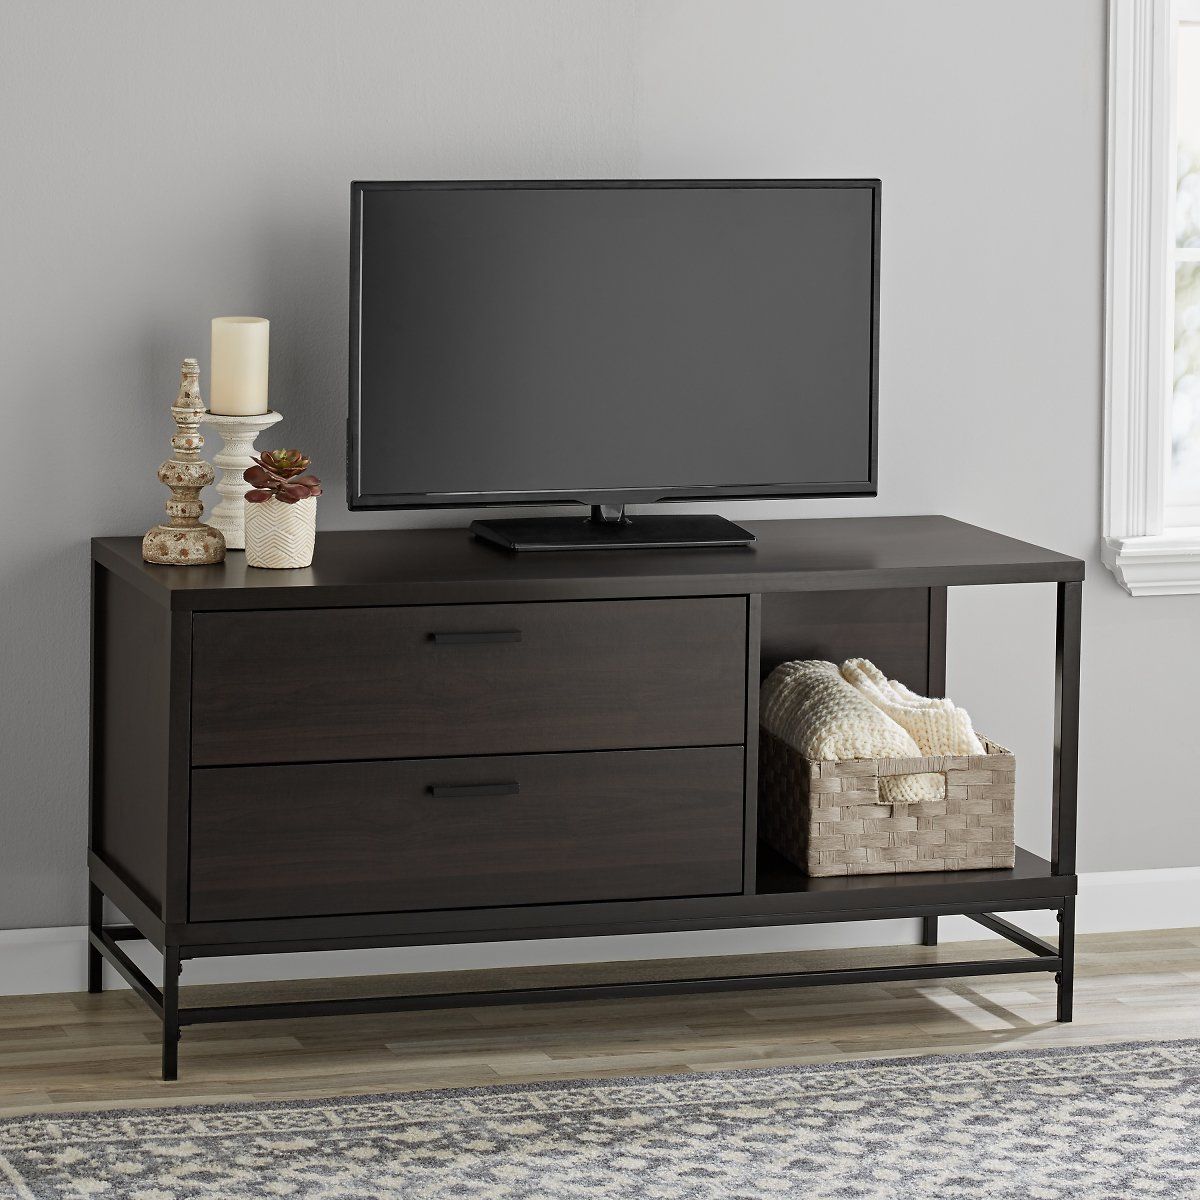 Mainstays Wood & Metal TV Stand (Ships Free)